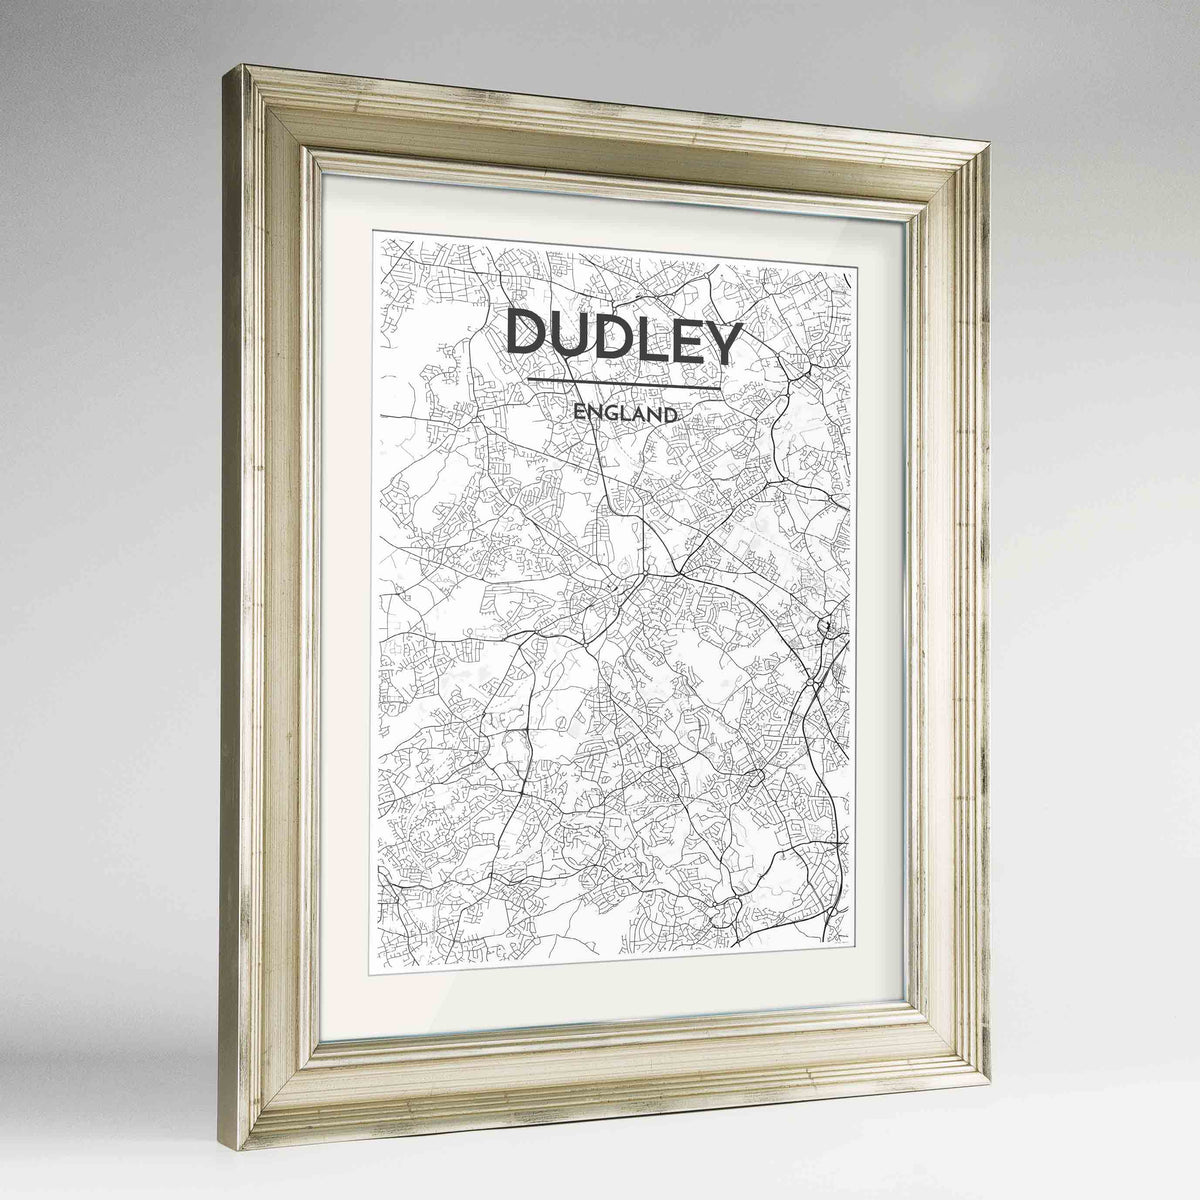 "Framed Dudley Map Art Print 24x36"" Champagne frame Point Two Design Group"